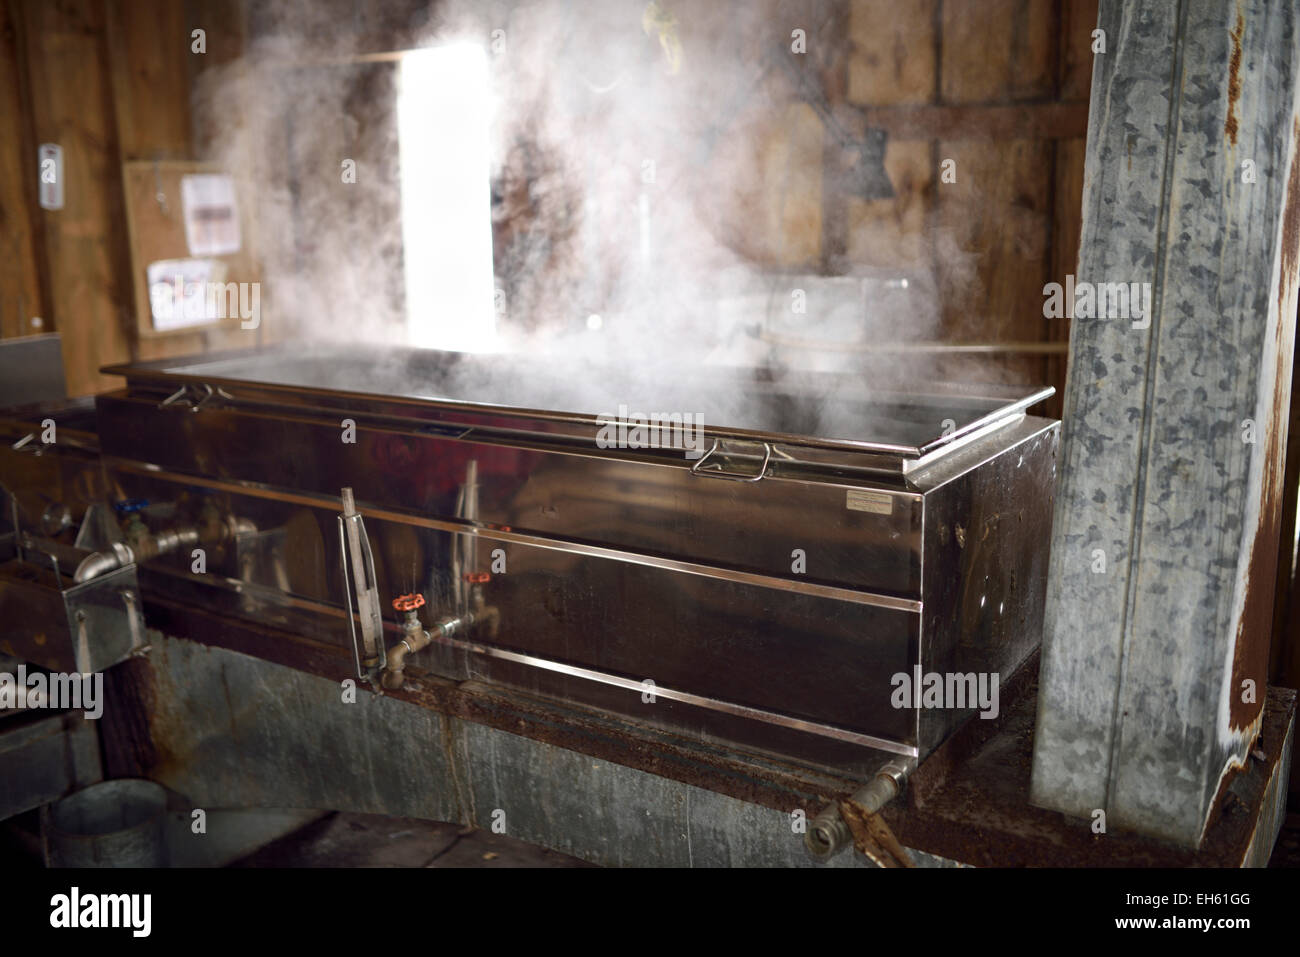 boiling sap stock photos u0026 boiling sap stock images alamy